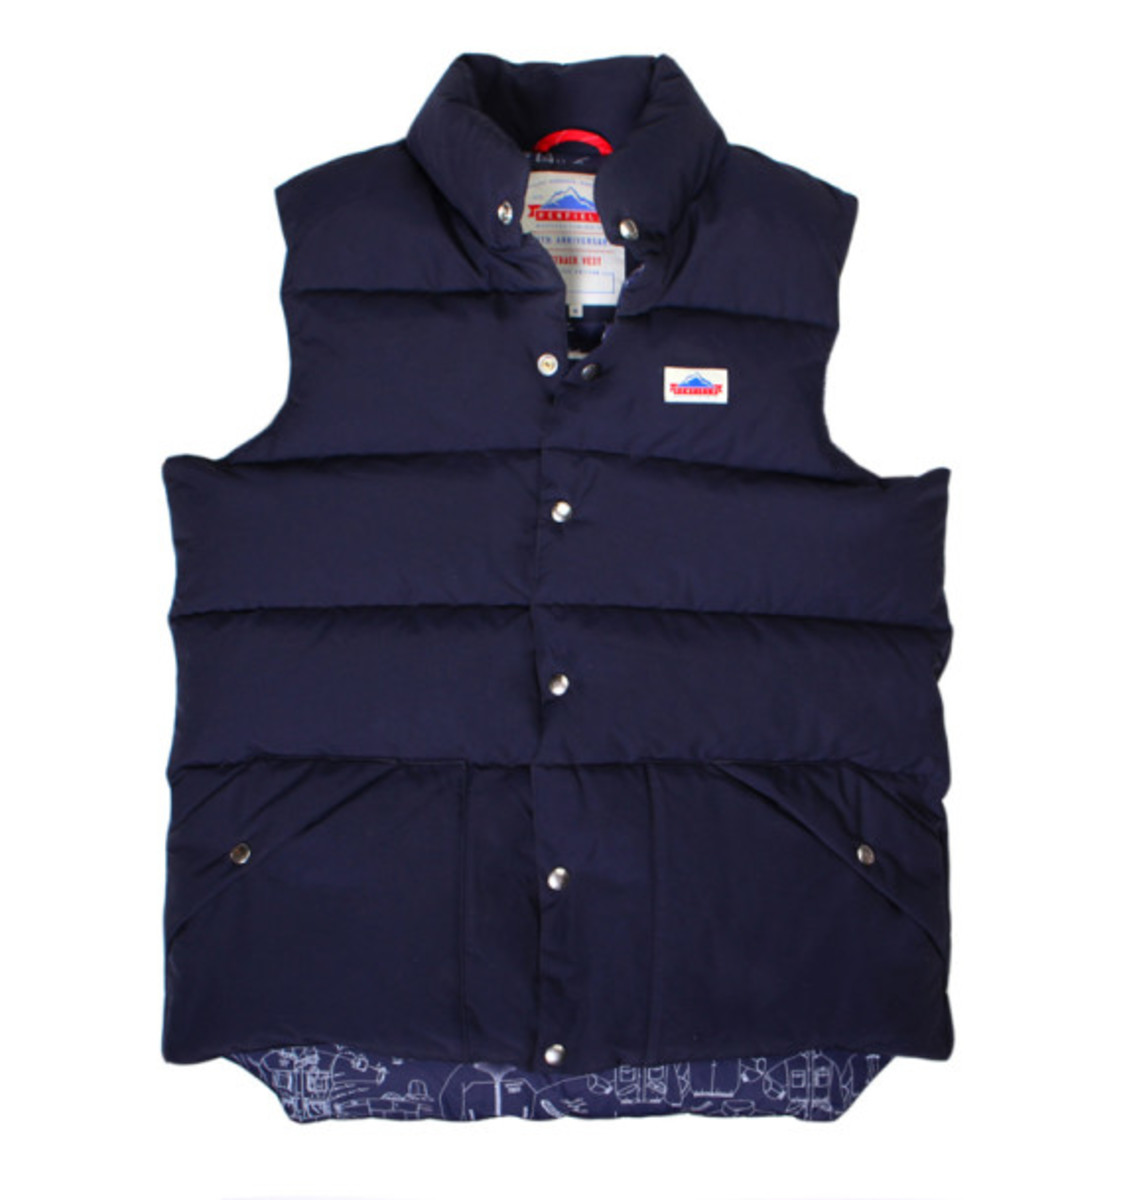 penfield-unveils-40th-anniversary-collection-04